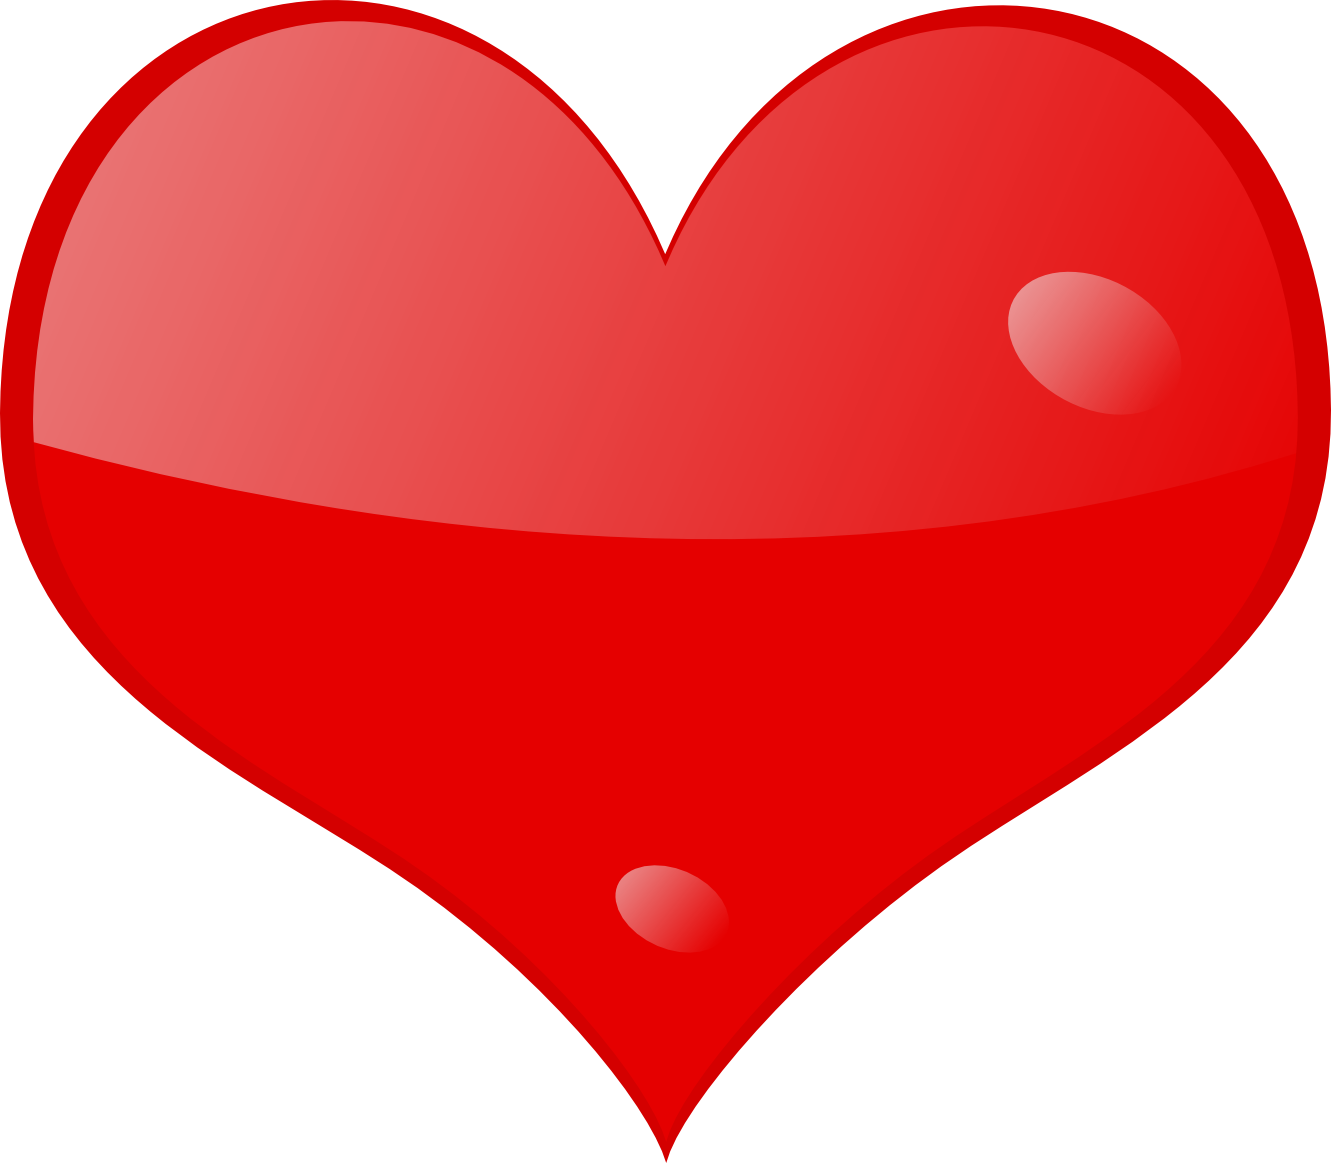 Pure heart clipart graphic royalty free library Red Heart PNG Image - PurePNG | Free transparent CC0 PNG Image Library graphic royalty free library